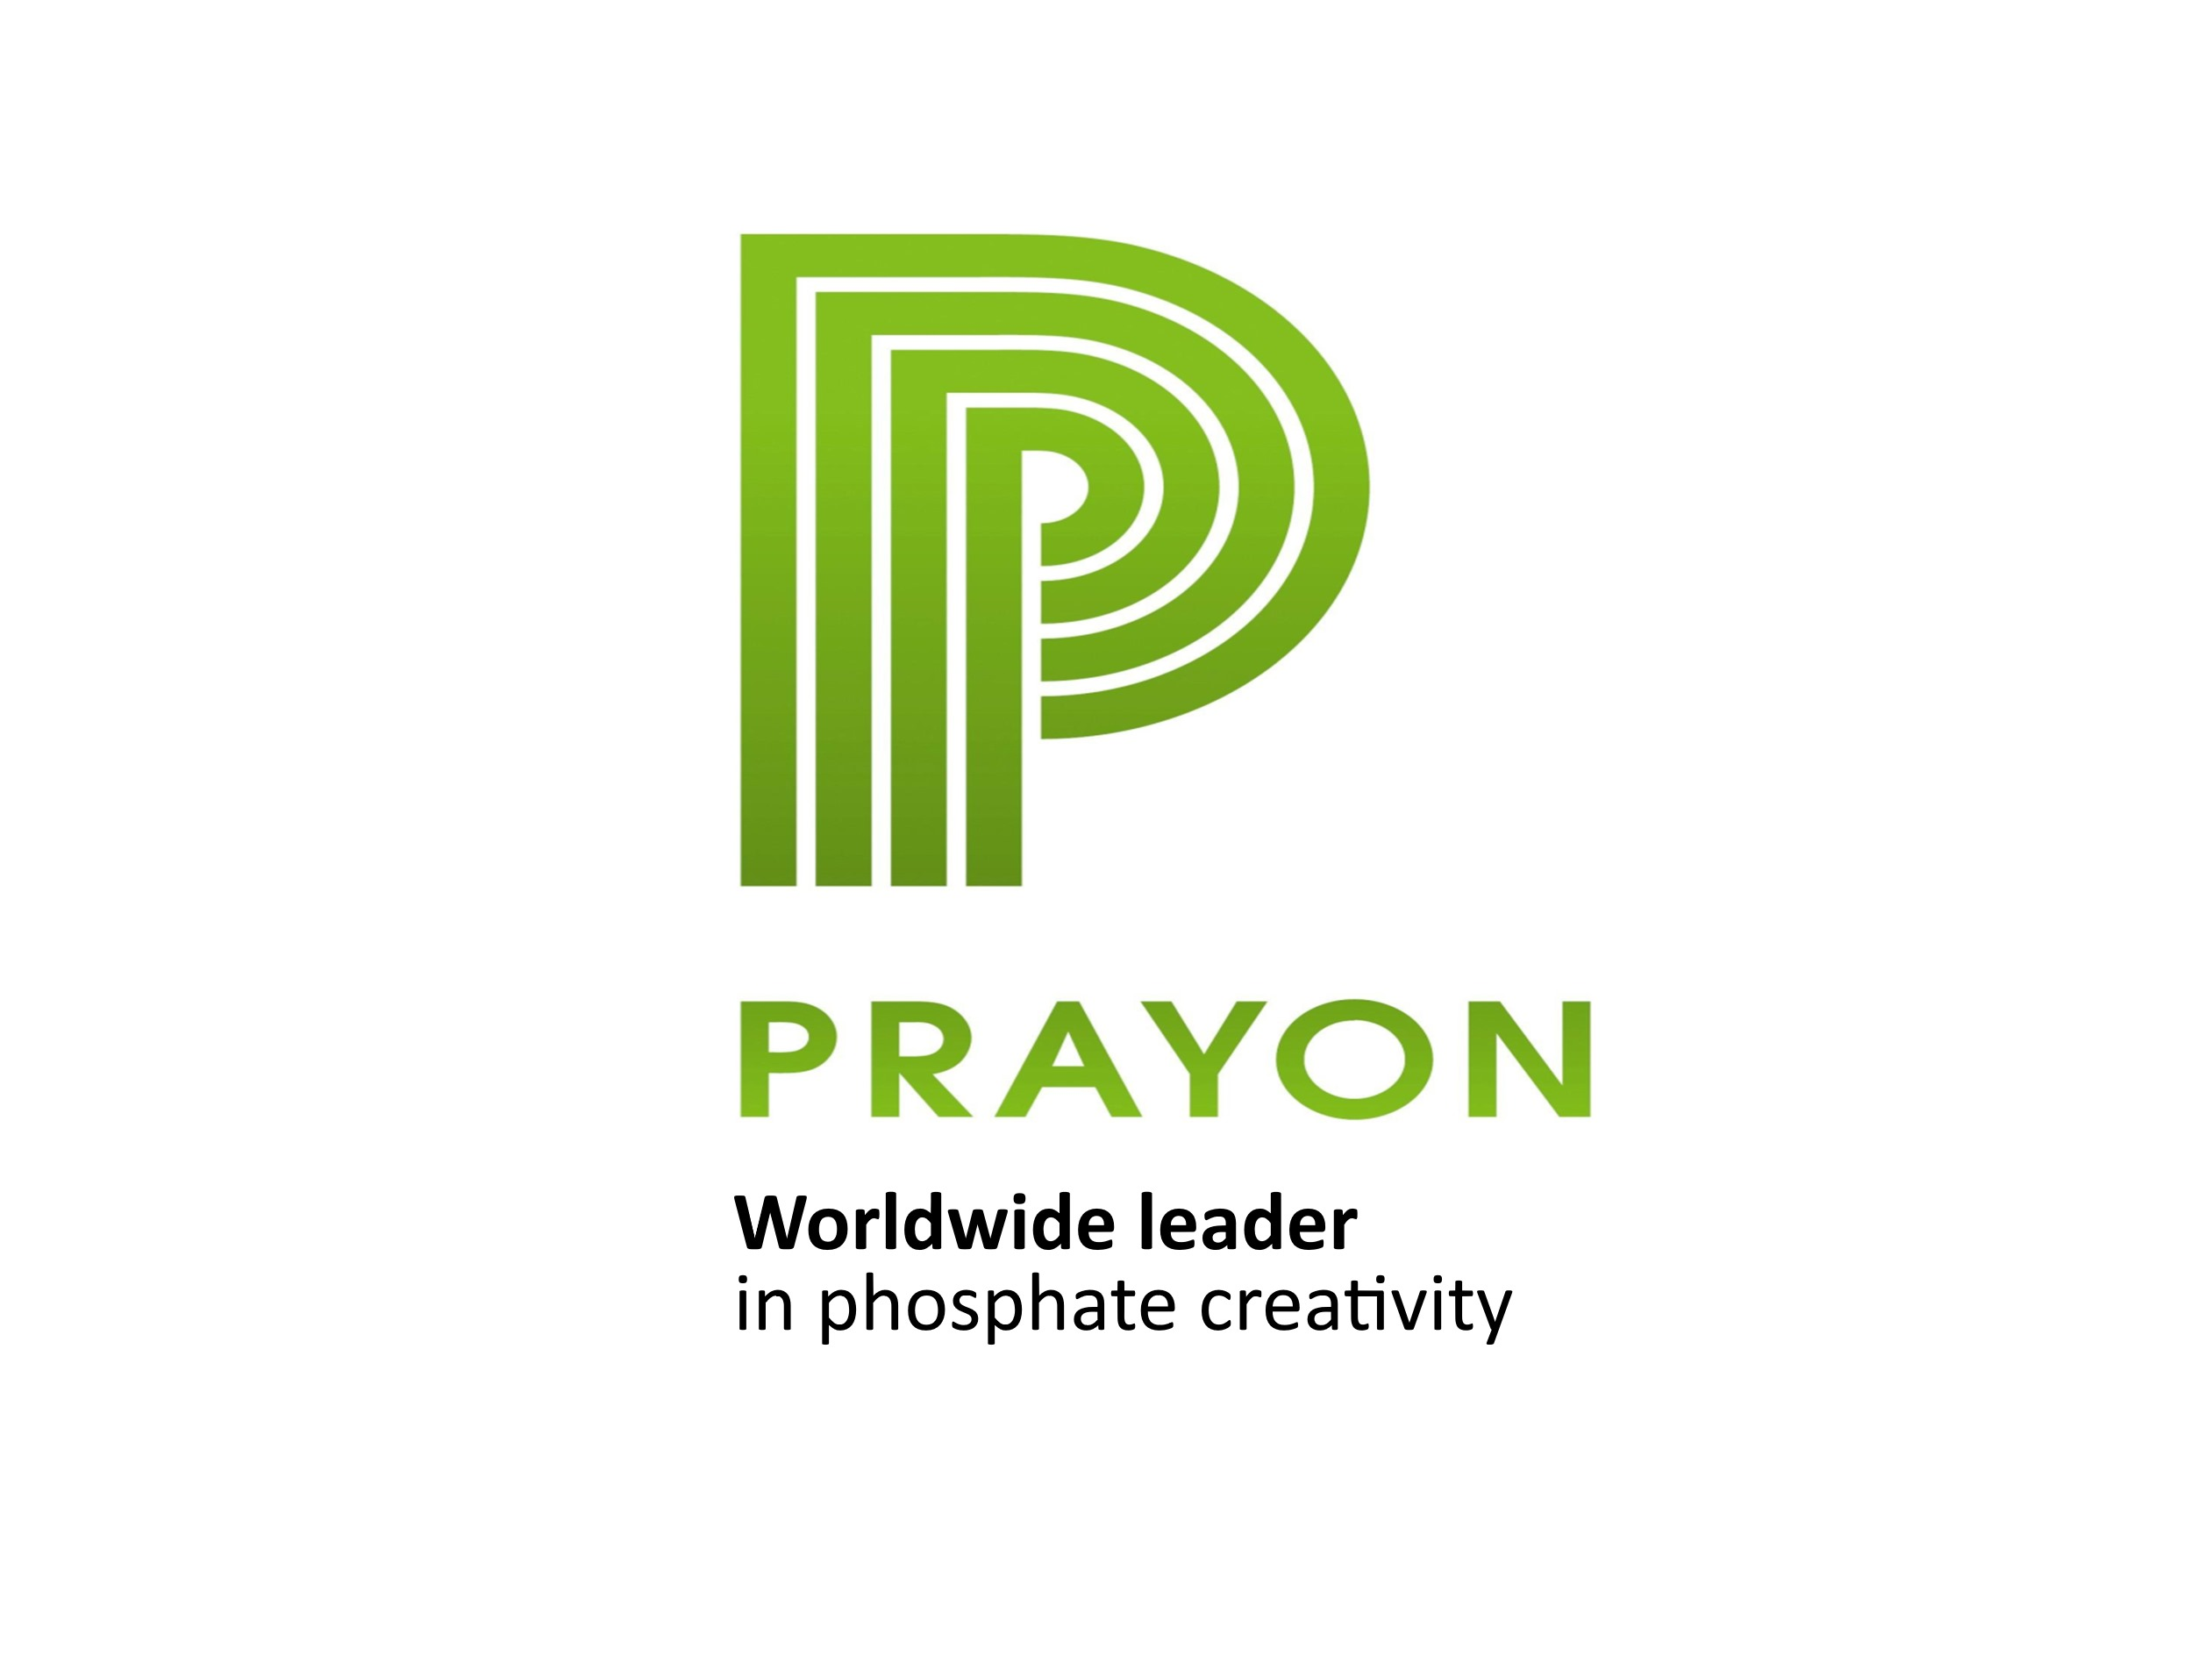 Prayon chemicals works with TCM debt collectors